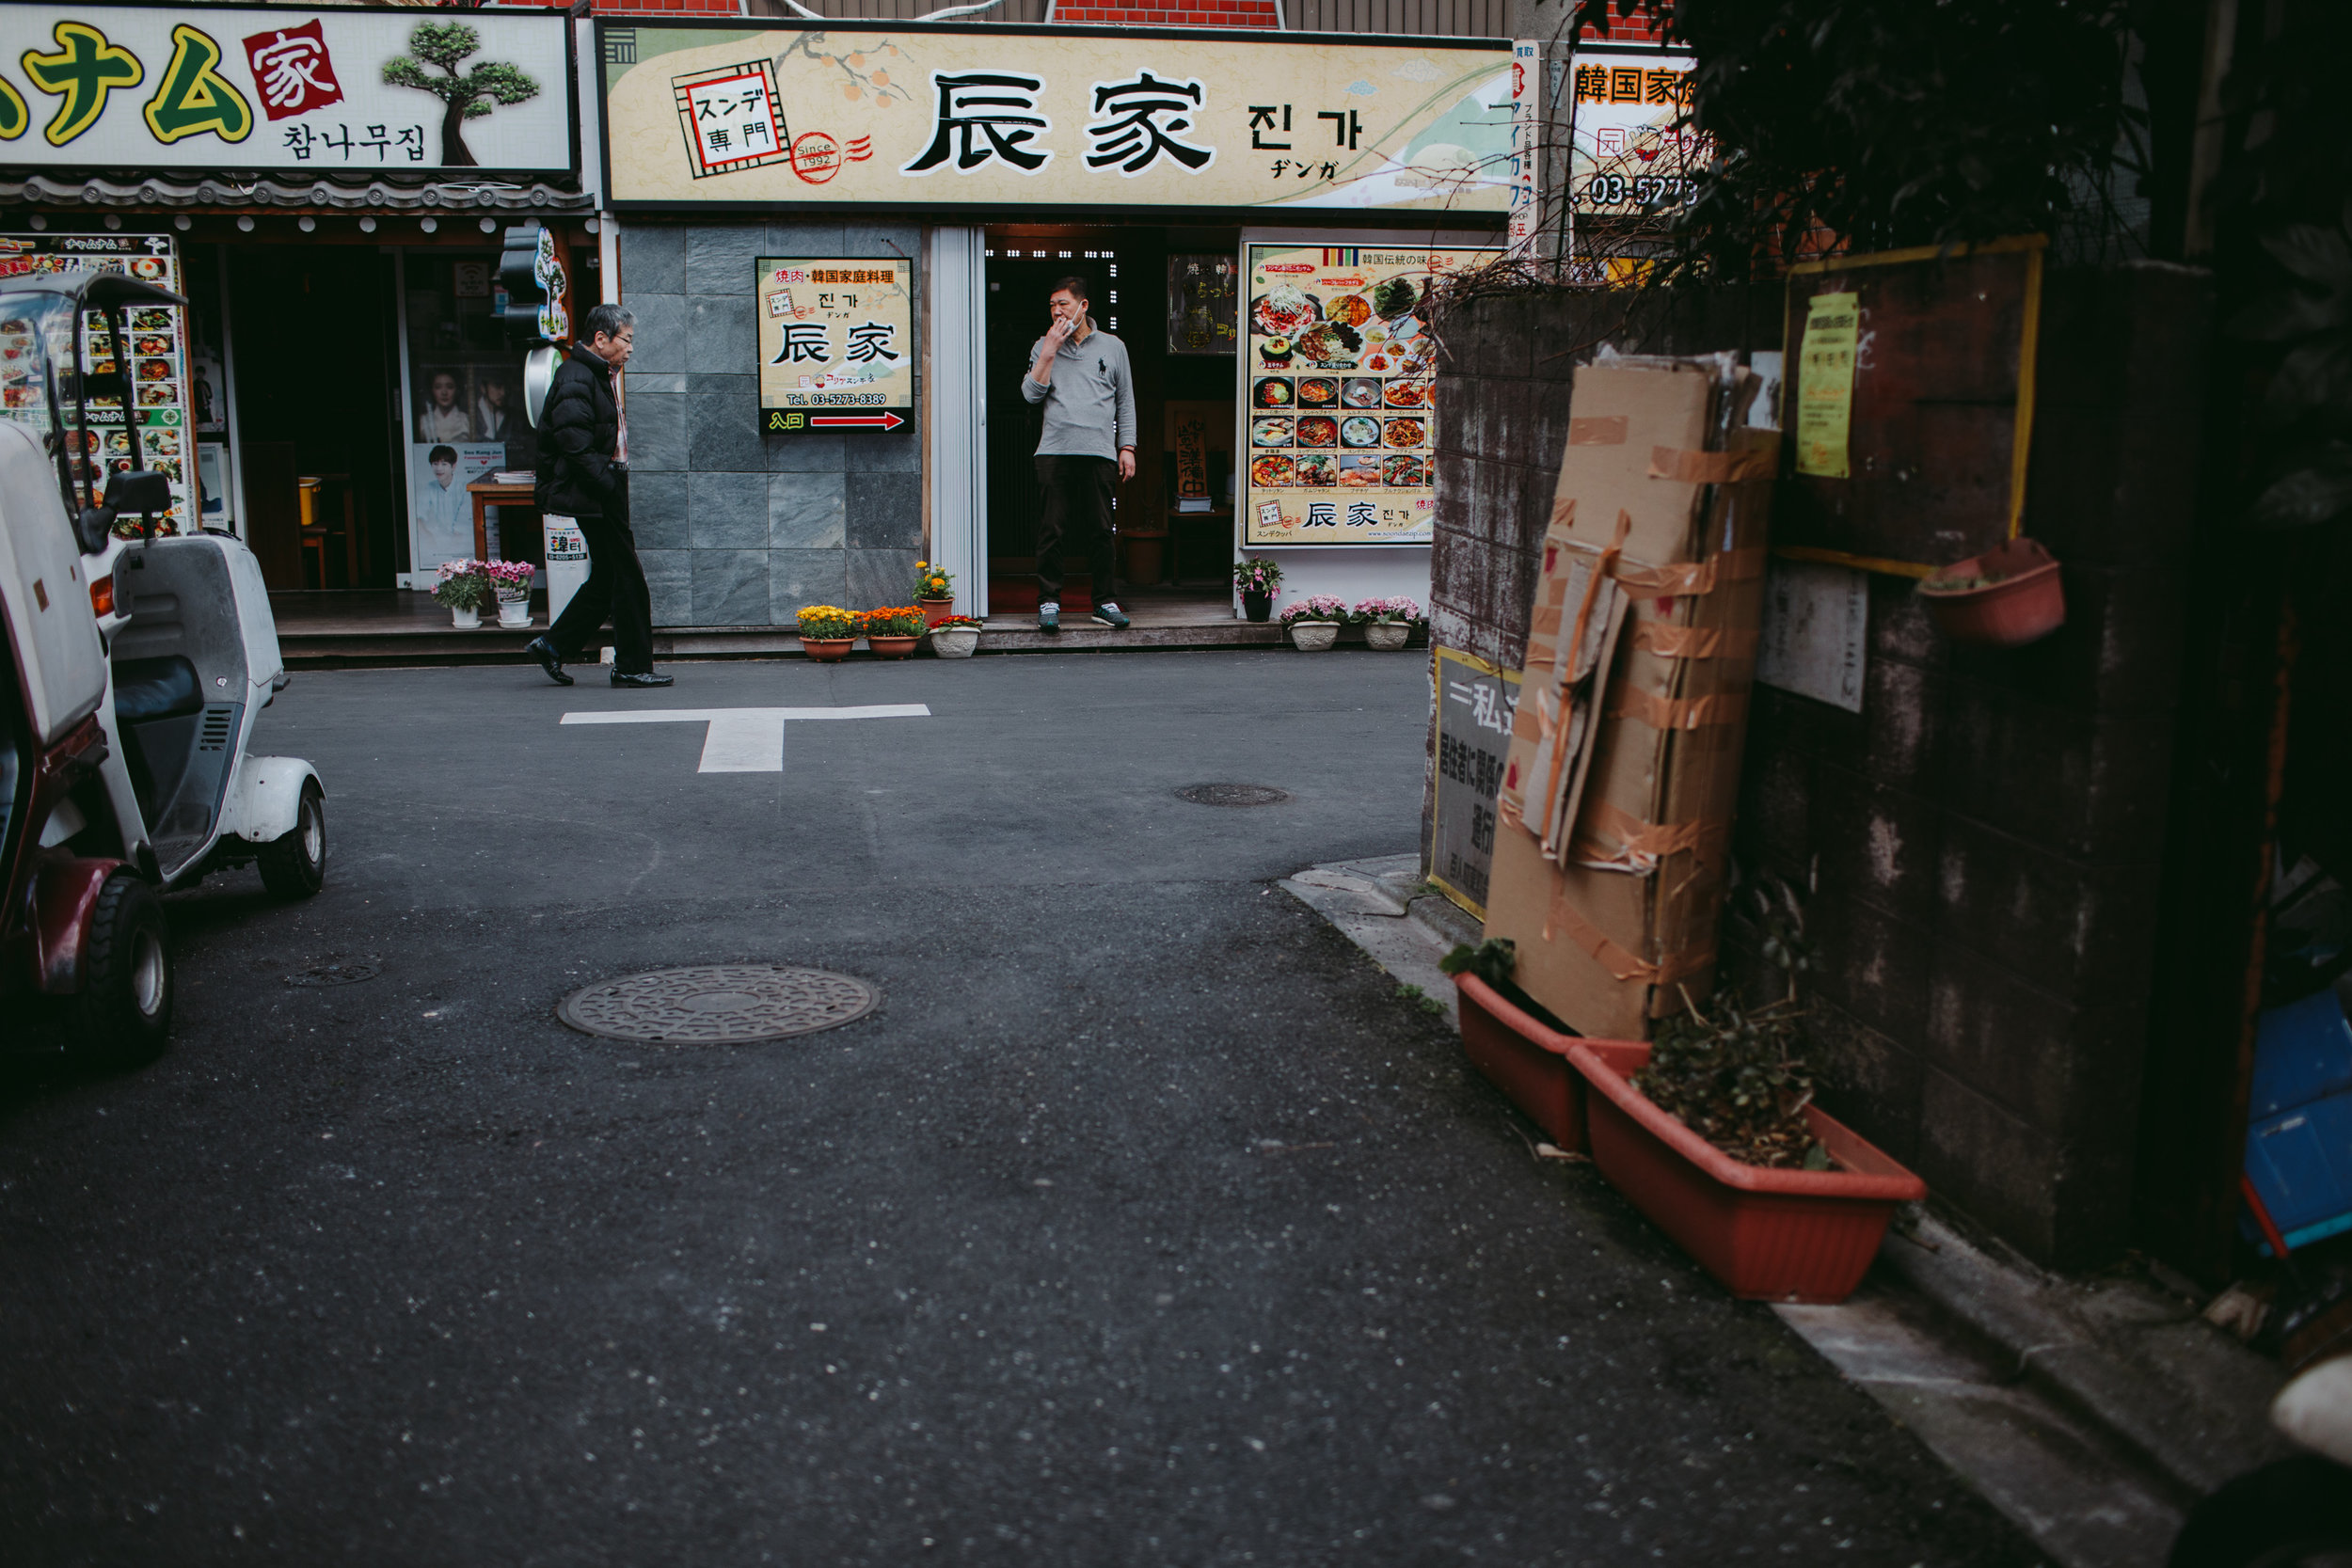 MikeSeehagel-commercial-lifestyle-travel-photography-Japan-10.jpg